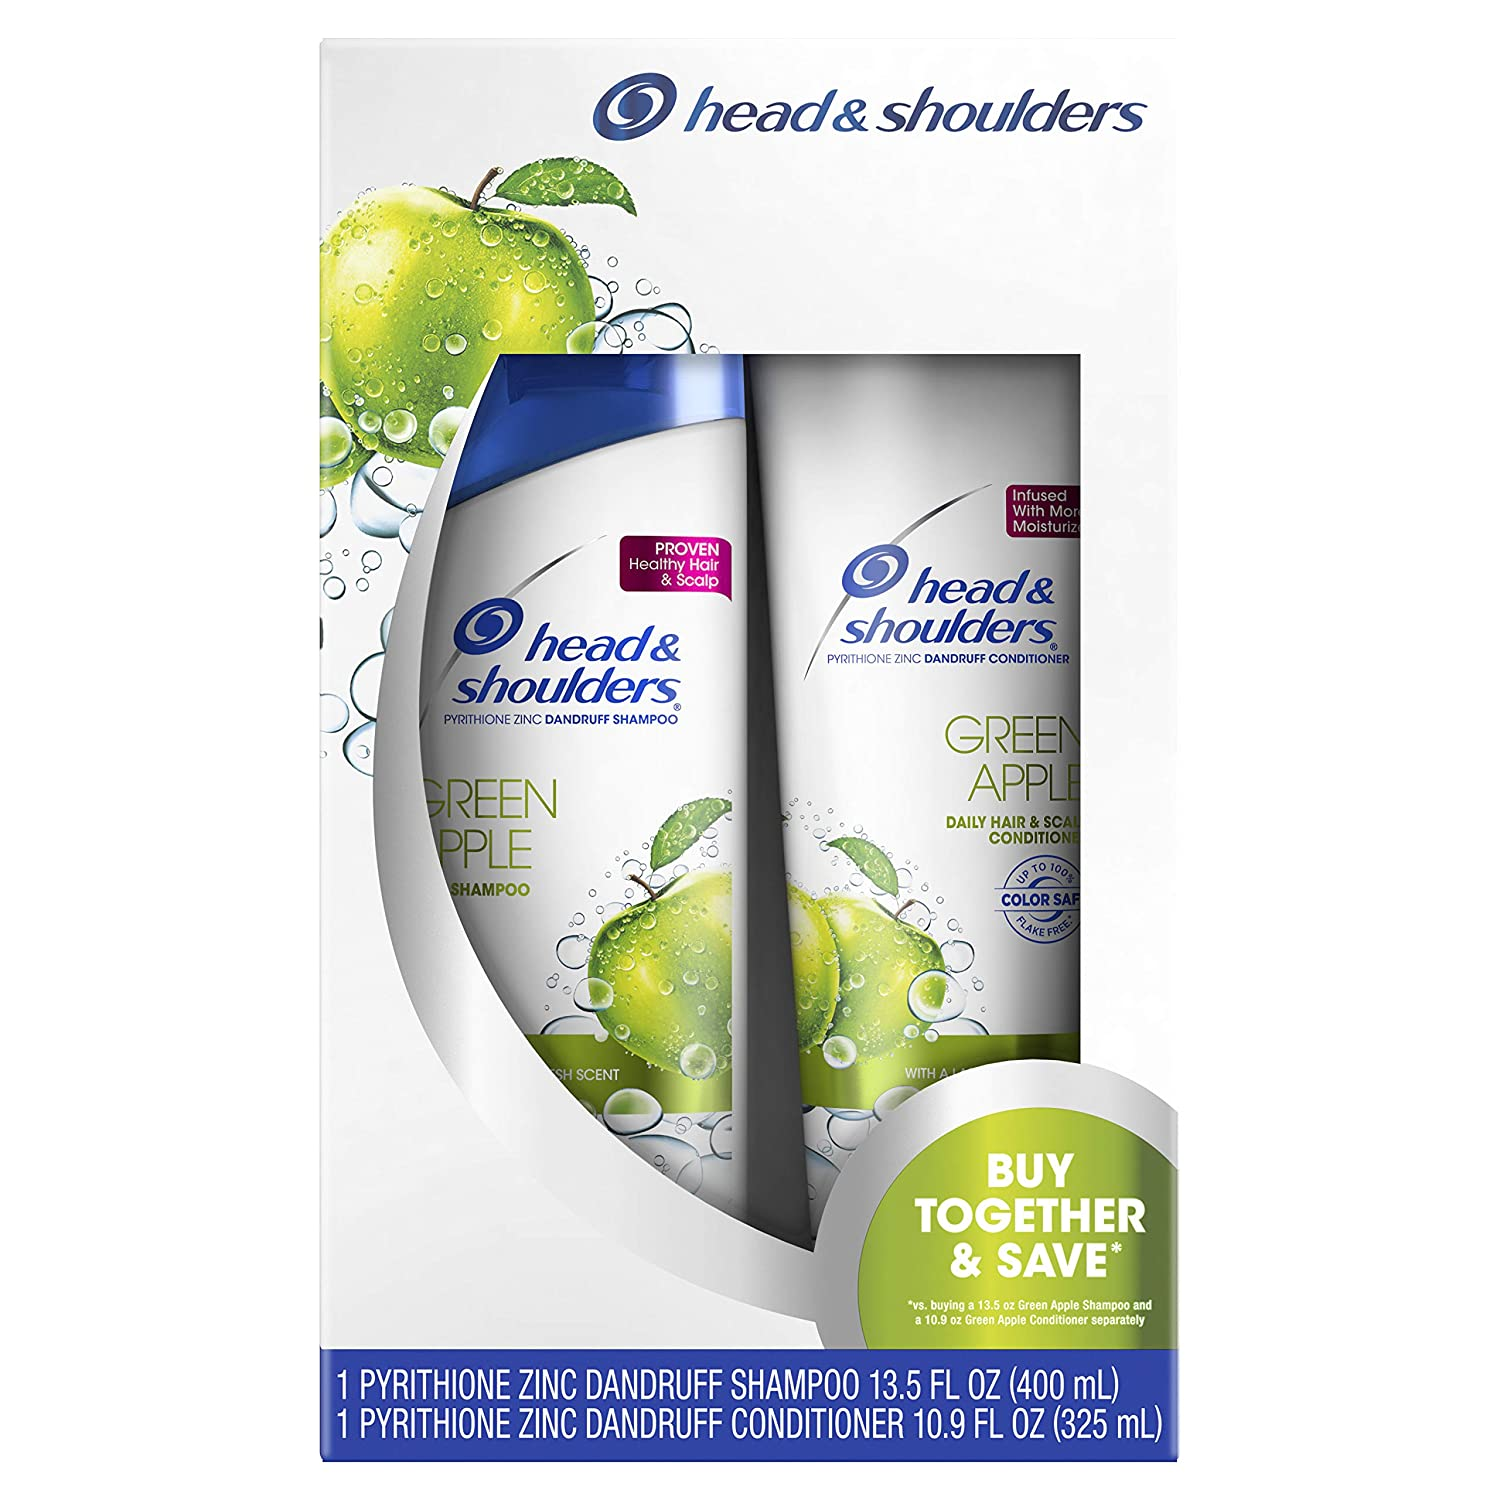 Head & Shoulders Green Apple Daily-use Anti-dandruff Shampoo and Conditioner Twin Pack, 24.4 Fluid Ounce